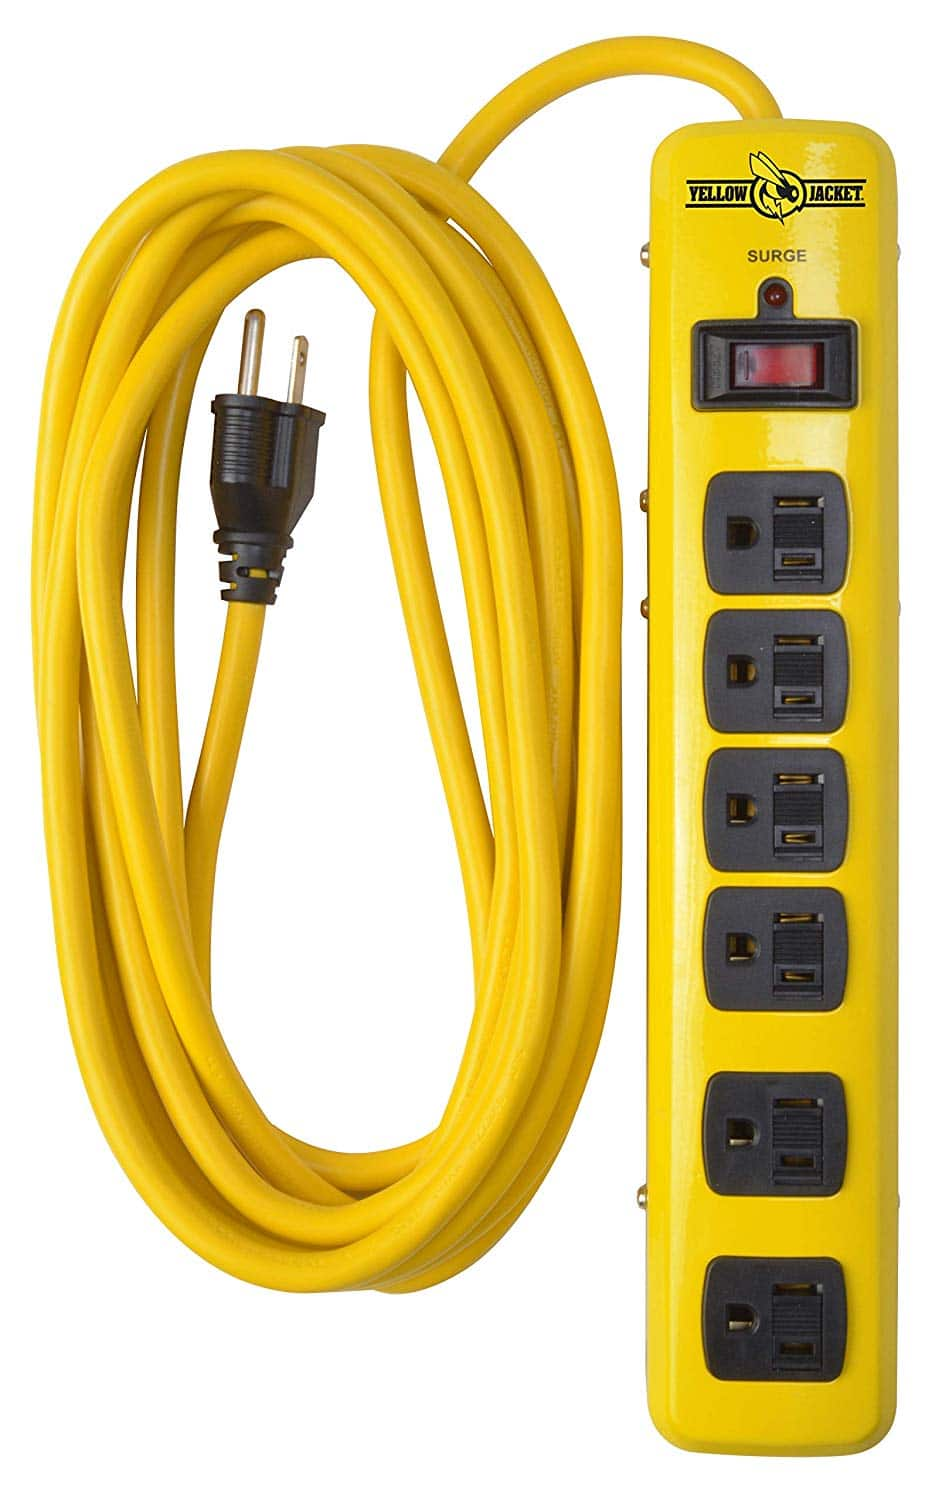 Yellow Jacket 5138N 5138 Metal Surge Protector Strip with 6 Outlets and 15 Foot Cord - $10.95 at Amazon + FS with Prime